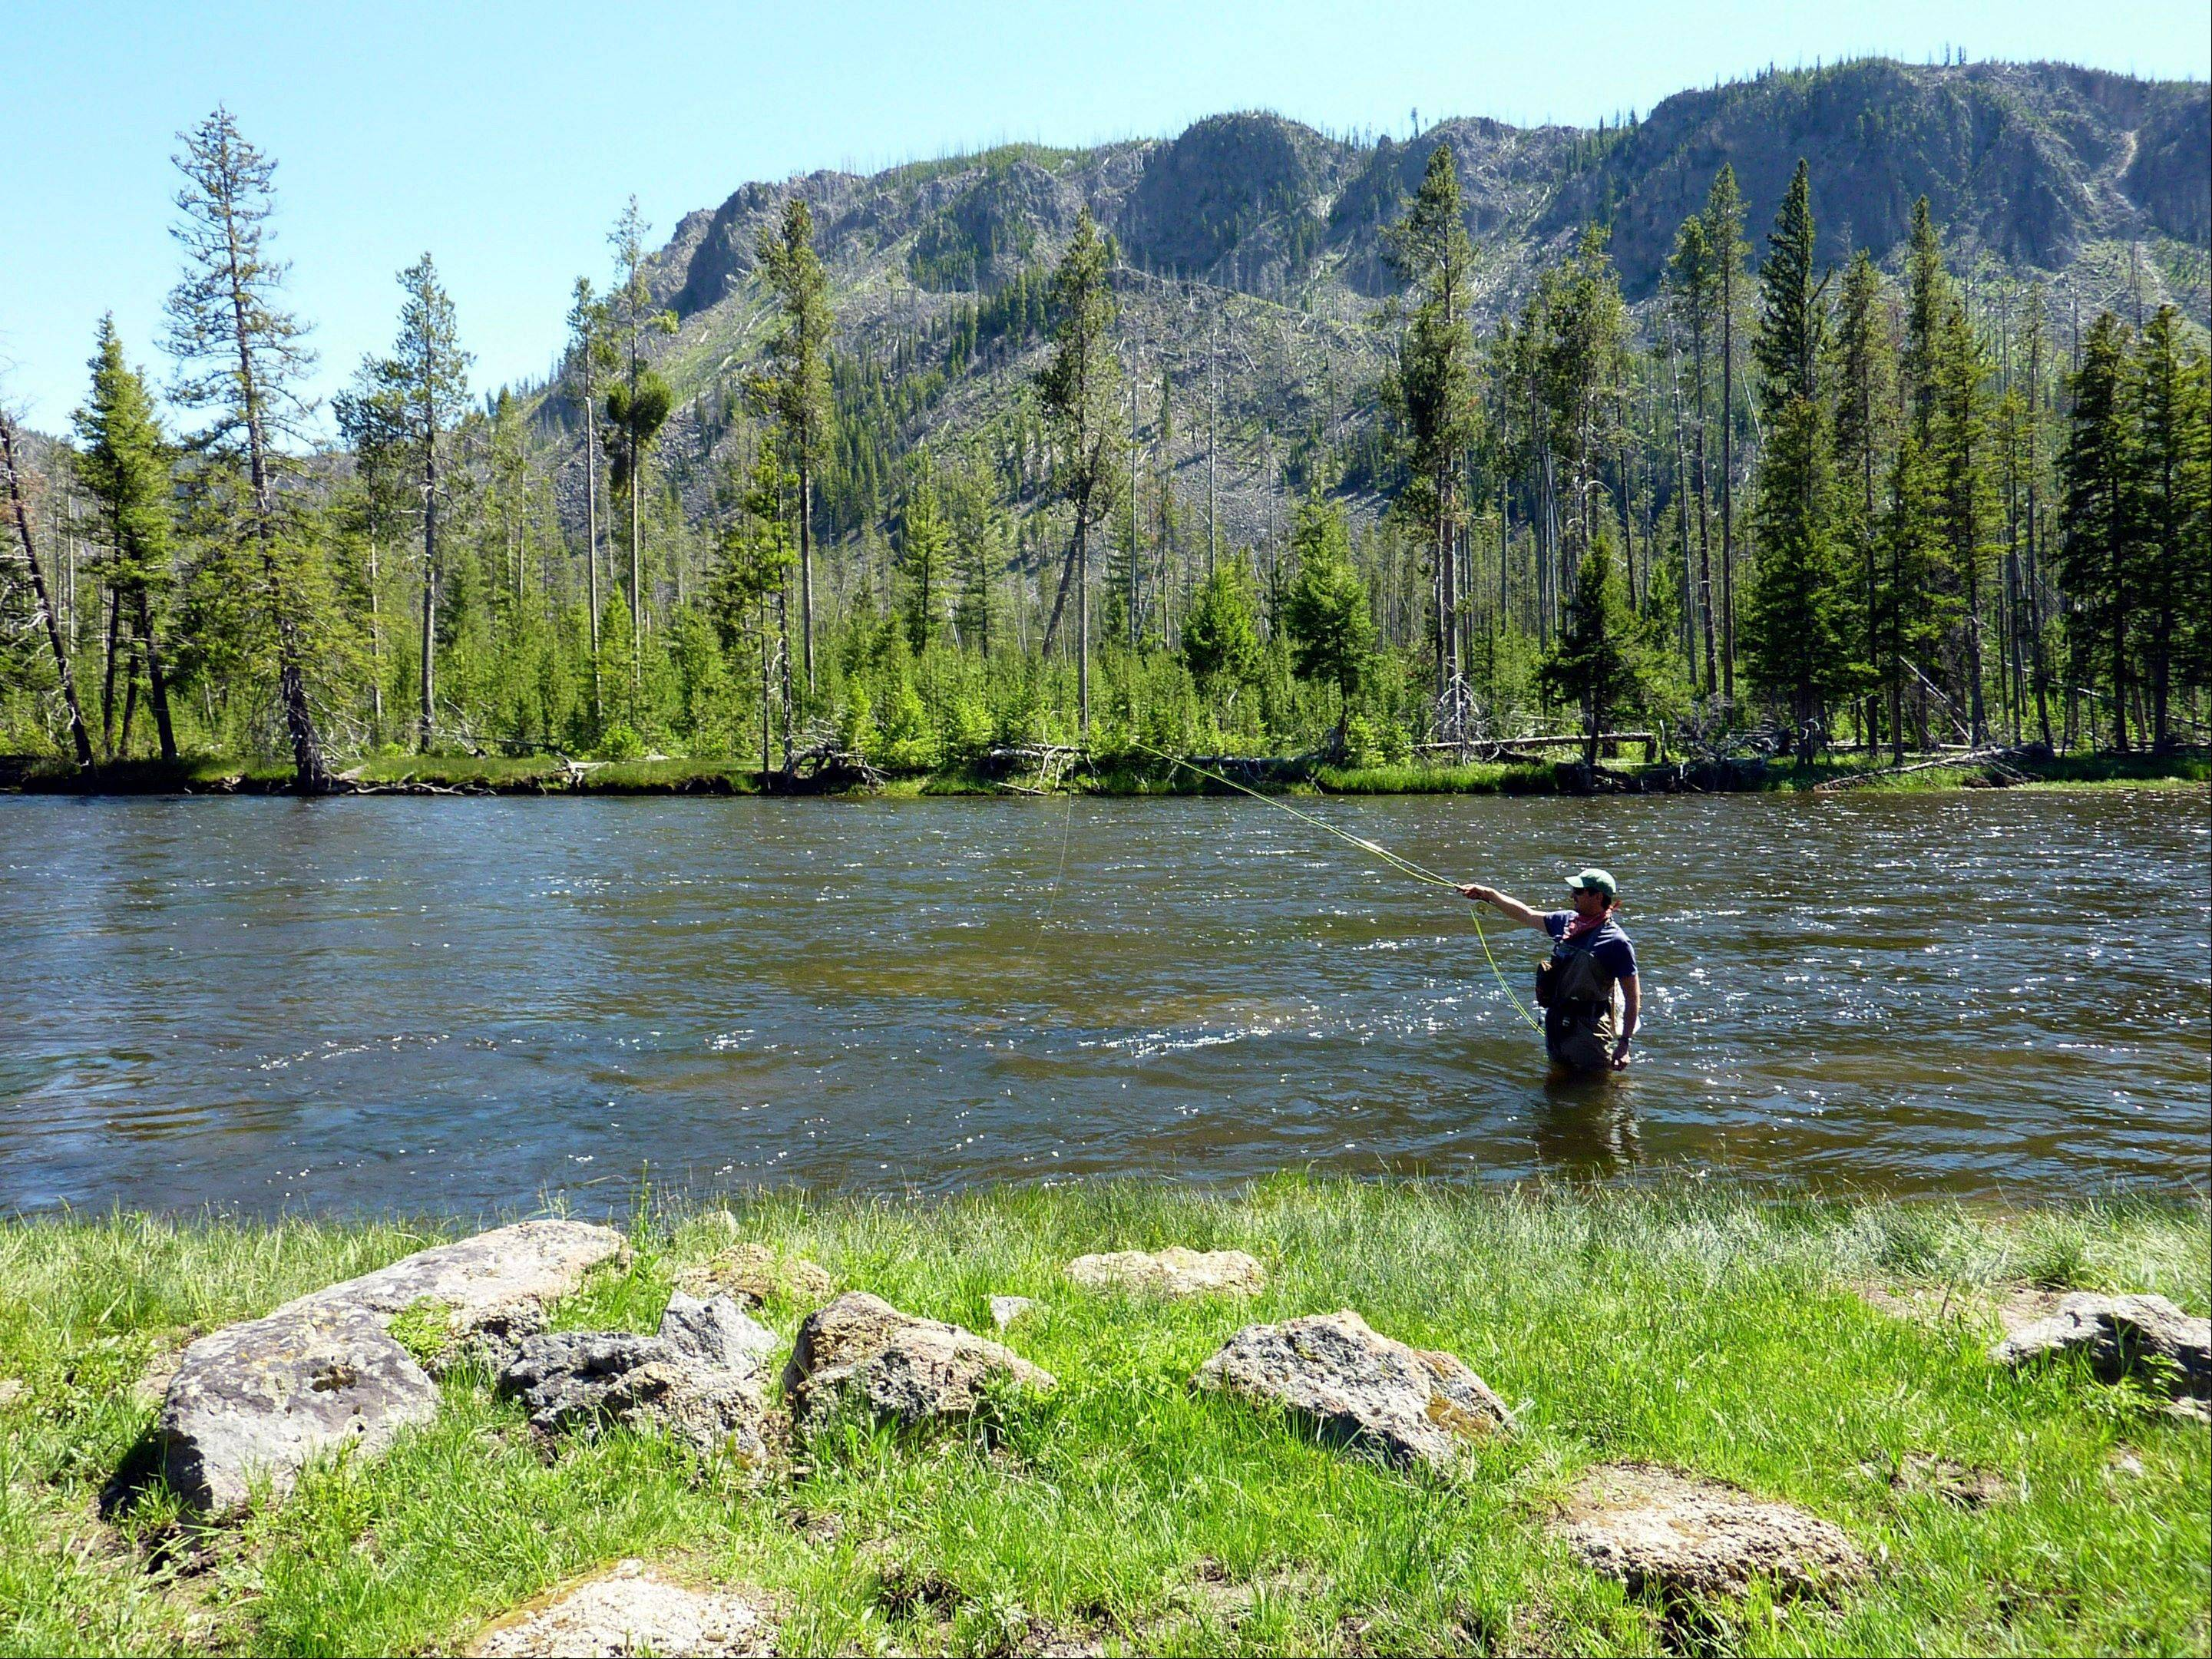 Desmond Butler fishes the upper Madison River in Yellowstone National Park, Mont.